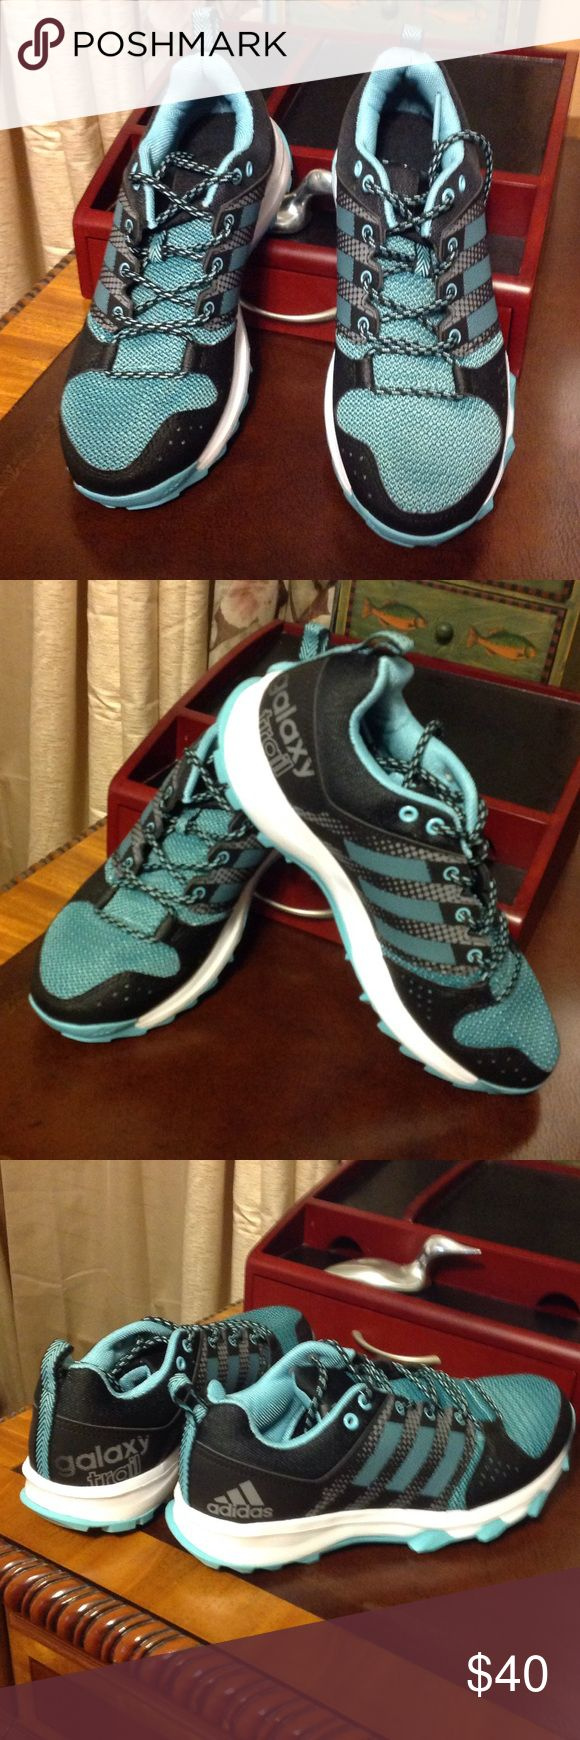 Adidas women's galaxy trail running shoe size 7 Adidas black and green galaxy trail running shoe size 7. Brand new!!💥💥💥 adidas Shoes Athletic Shoes